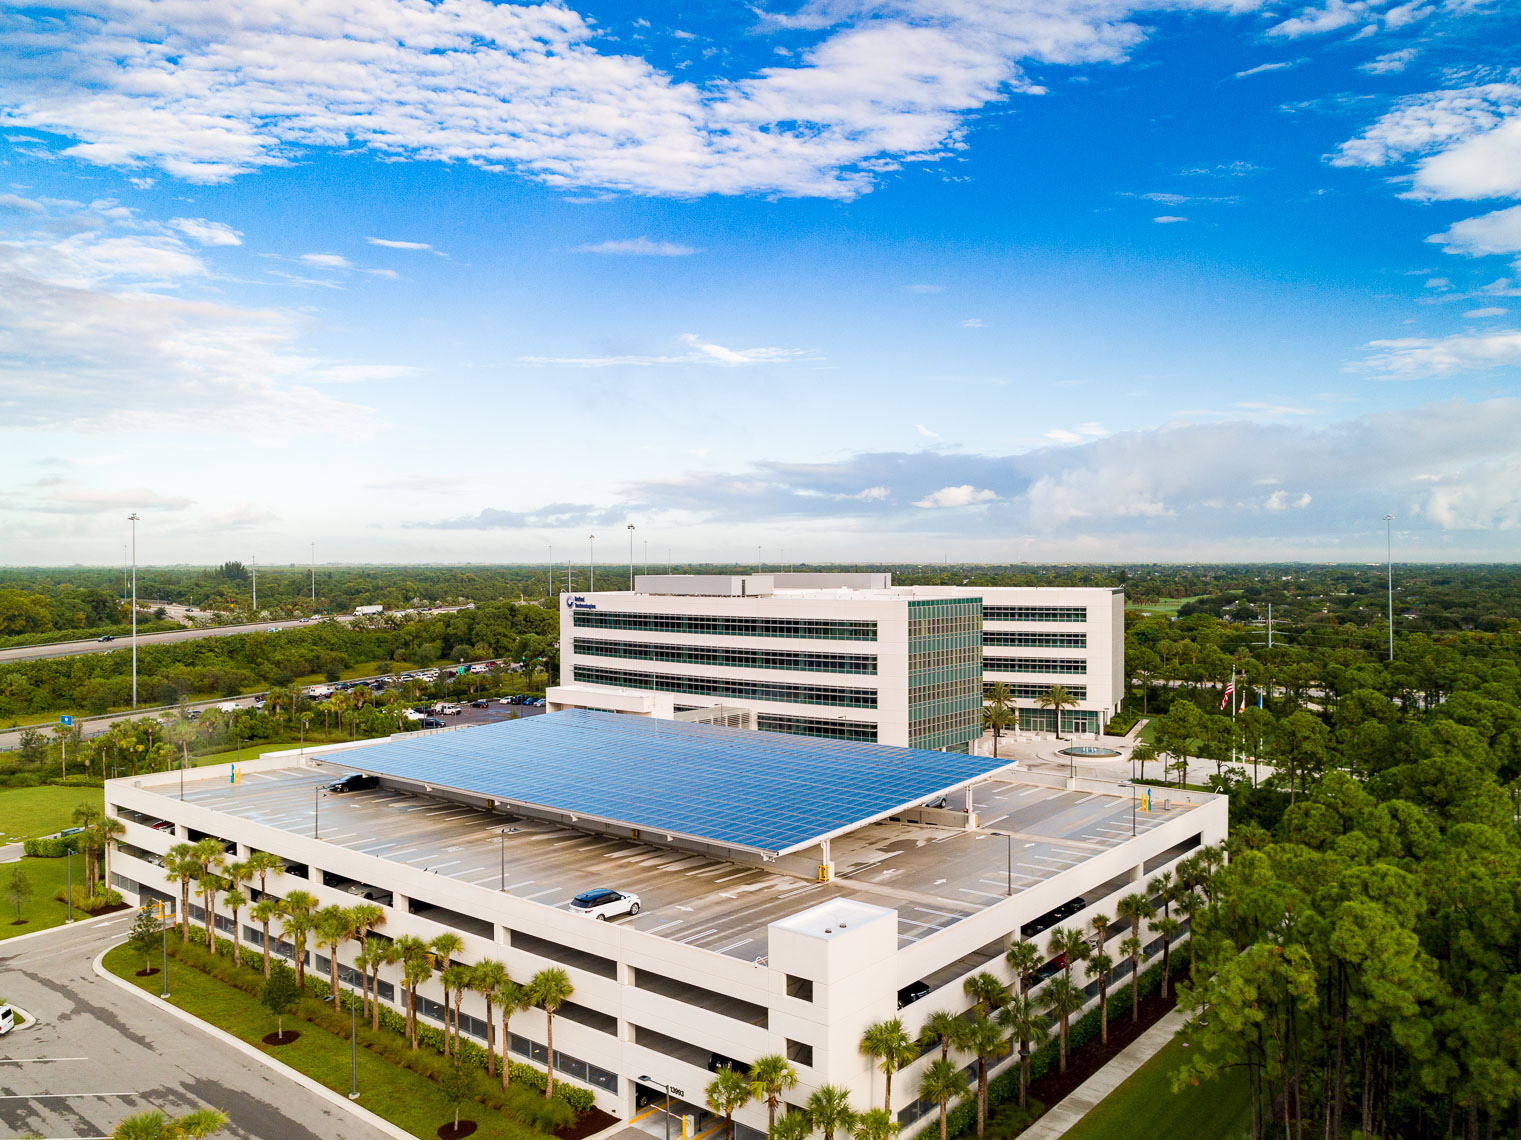 Aerial drone shots of the Carrier HQ in south Florida